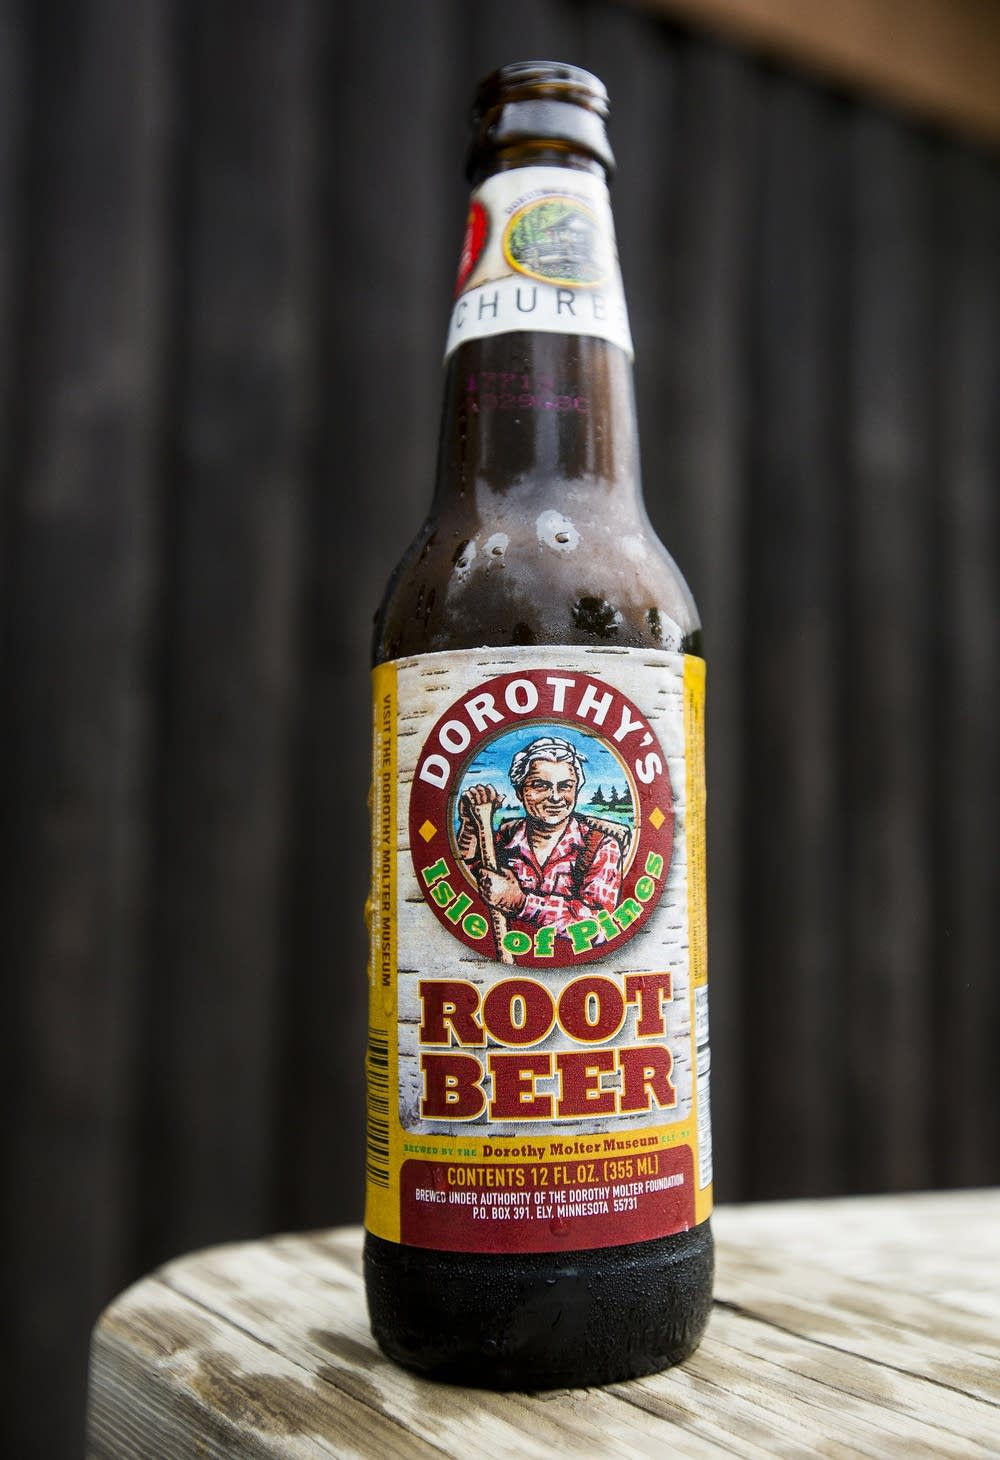 The museum brews root beer to raise funds.